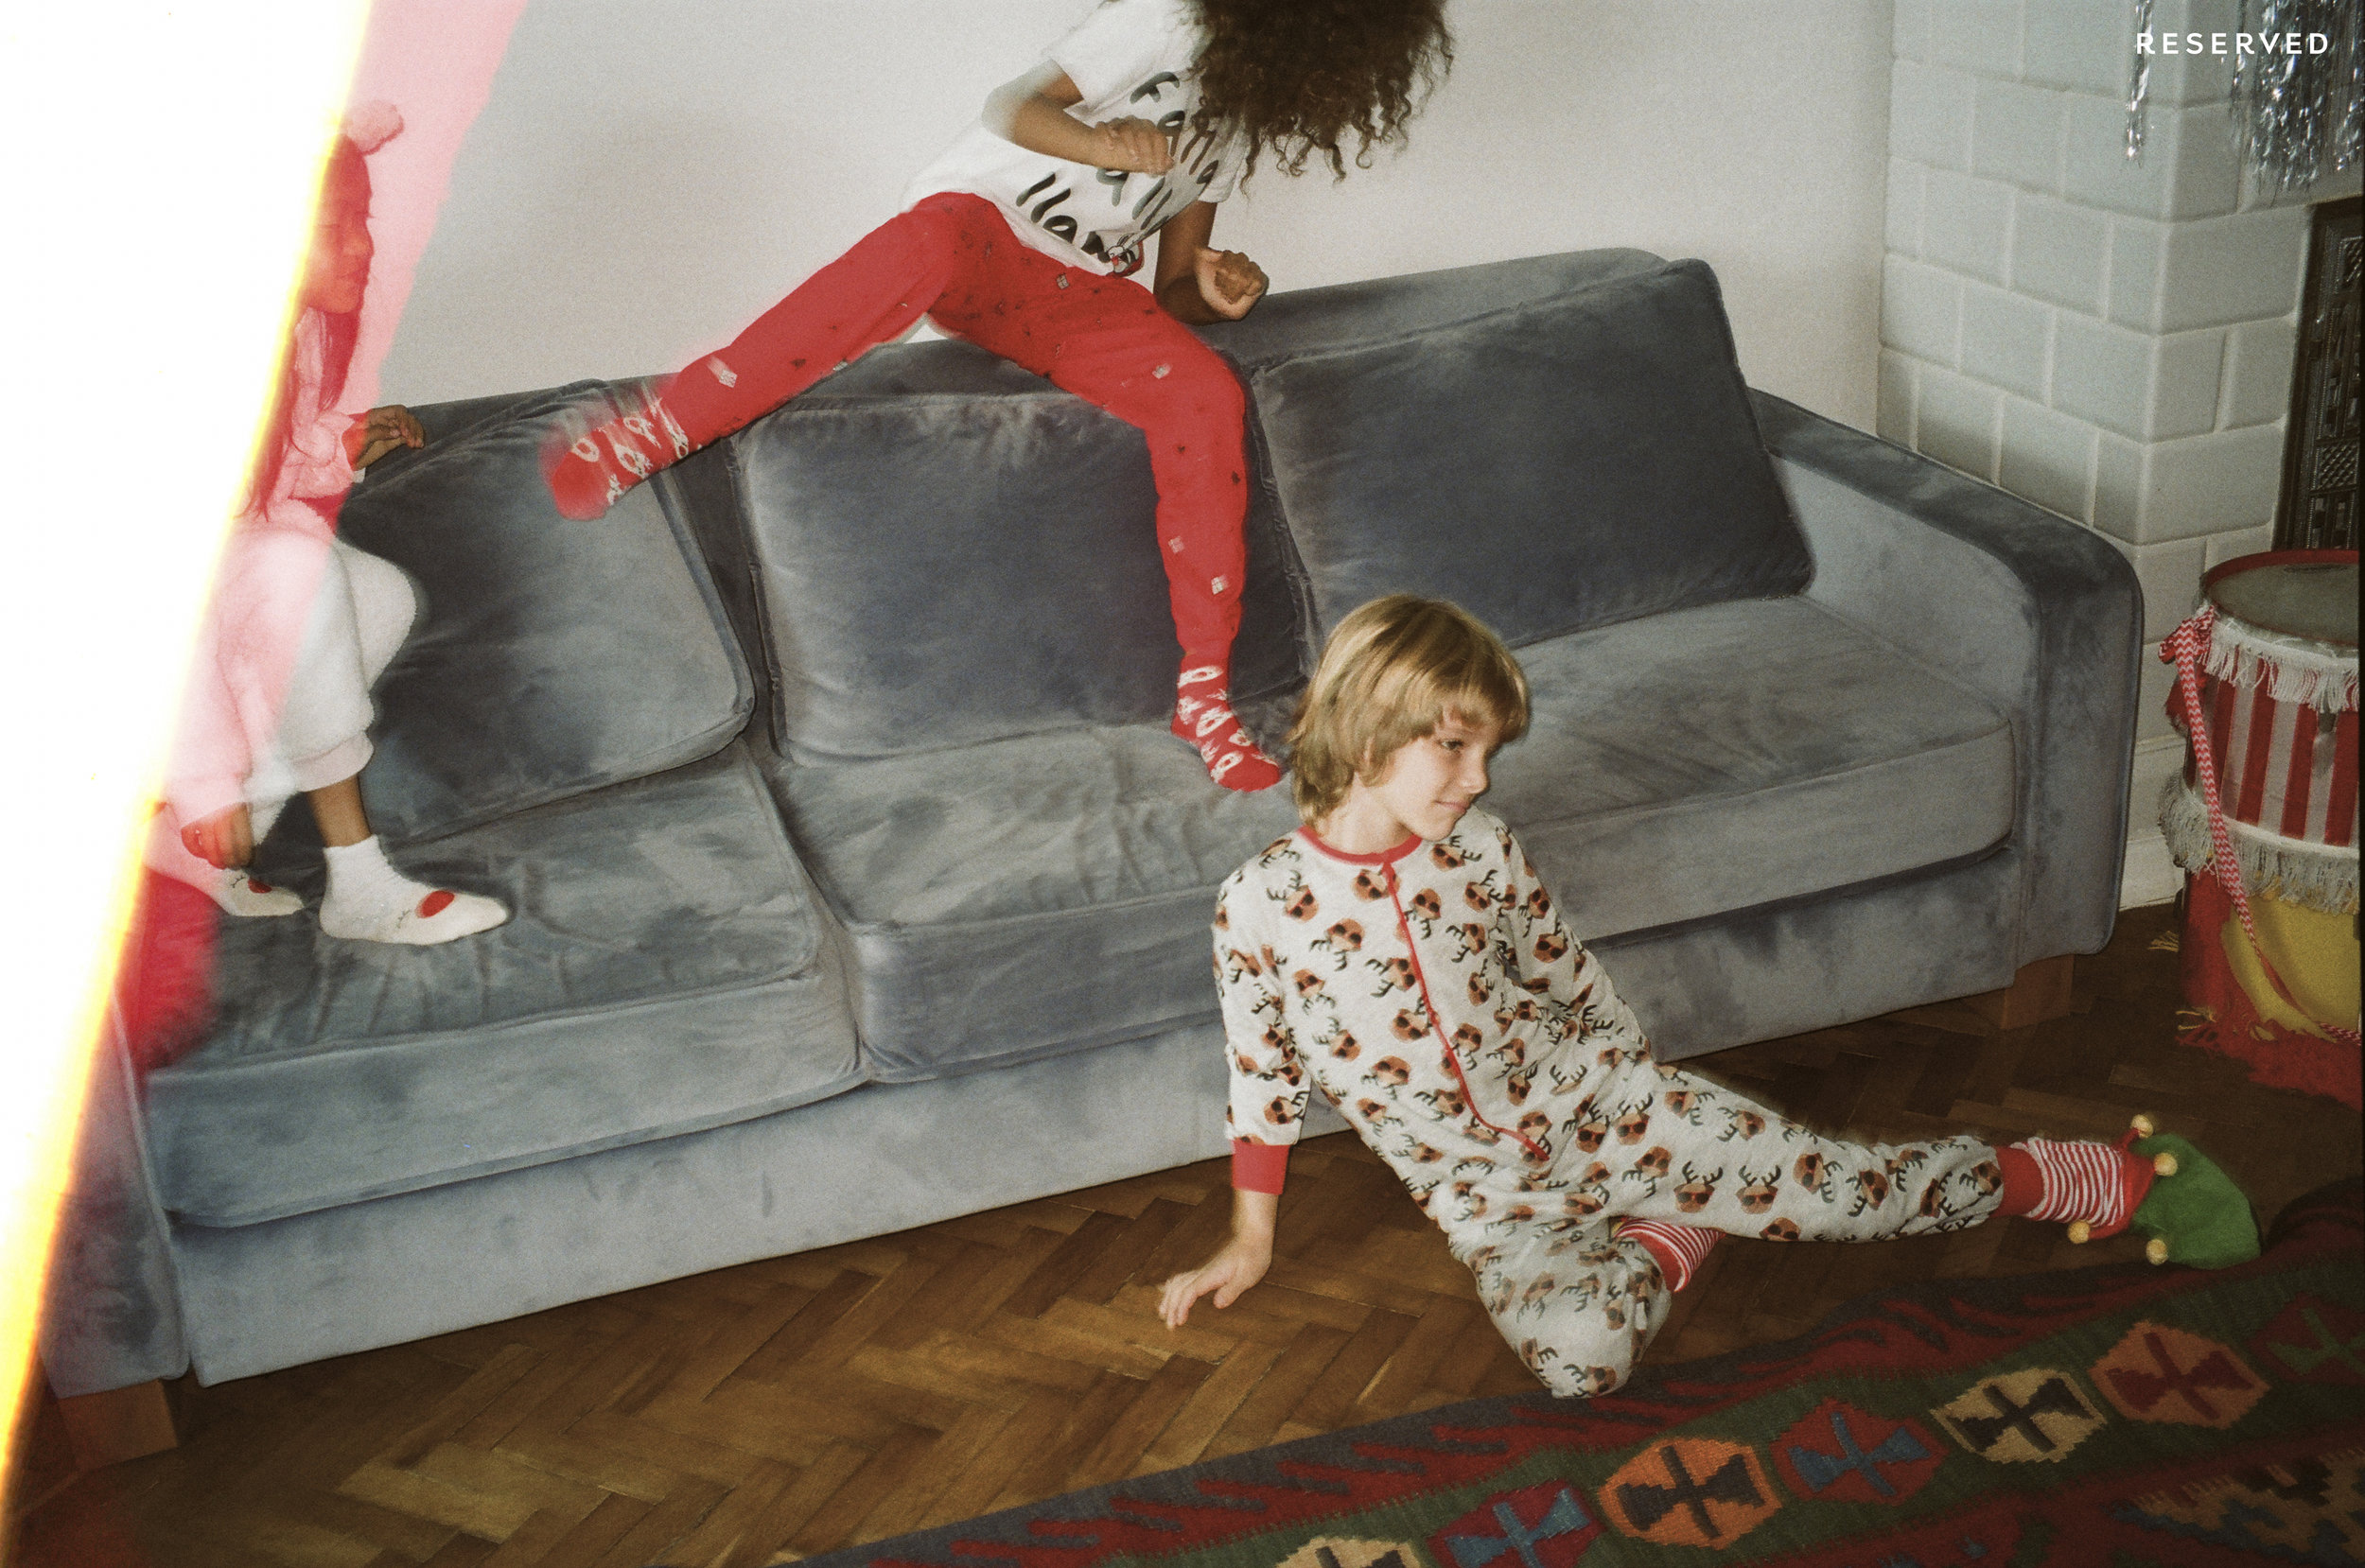 Reserved Kids Christmas 2018 Campaign